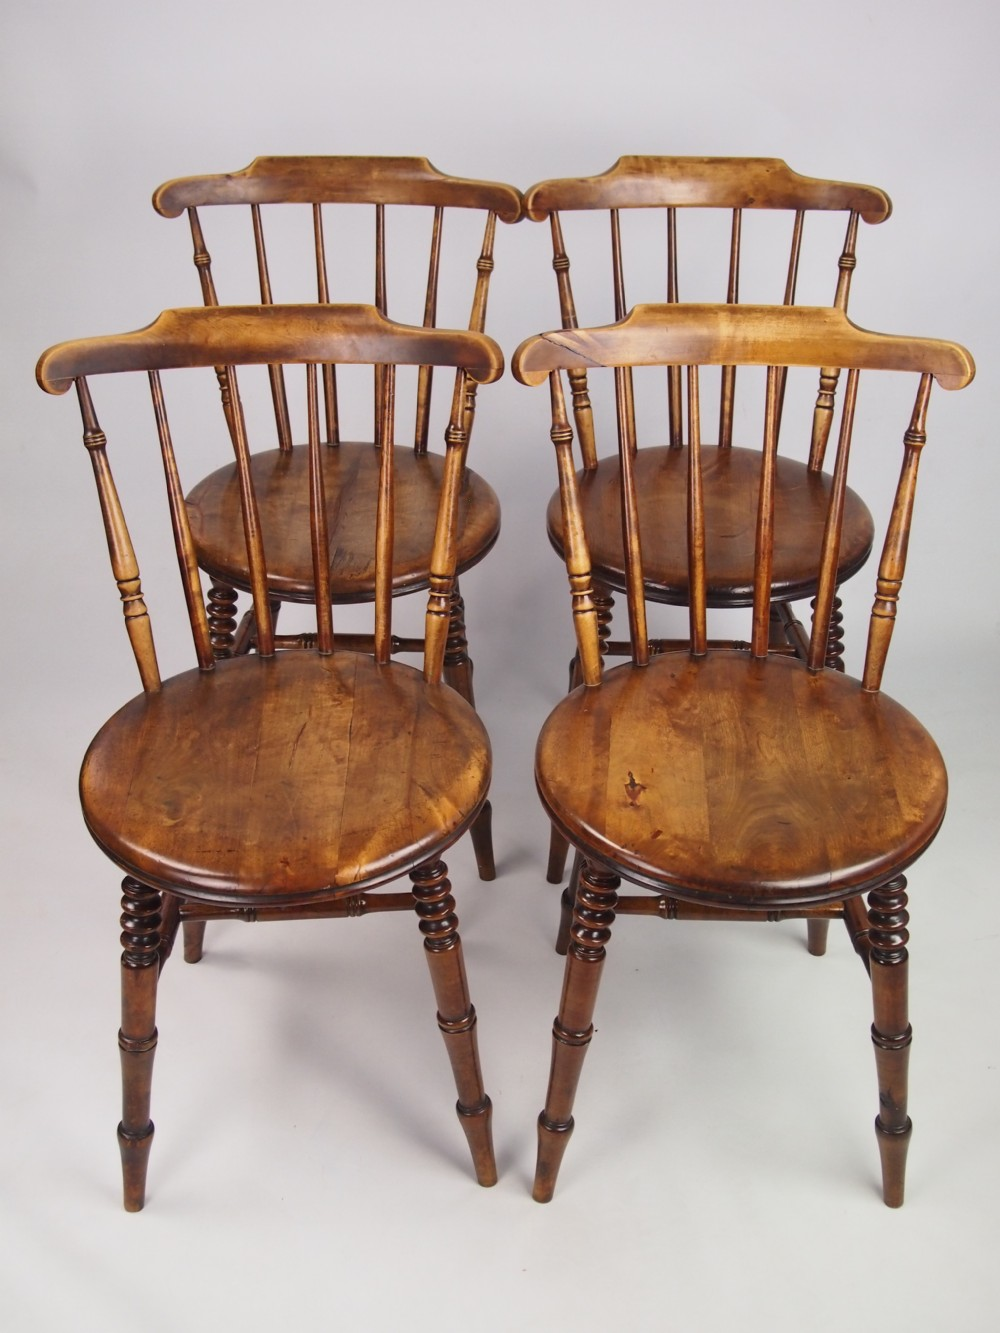 Charming Antique Pine Kitchen Chairs